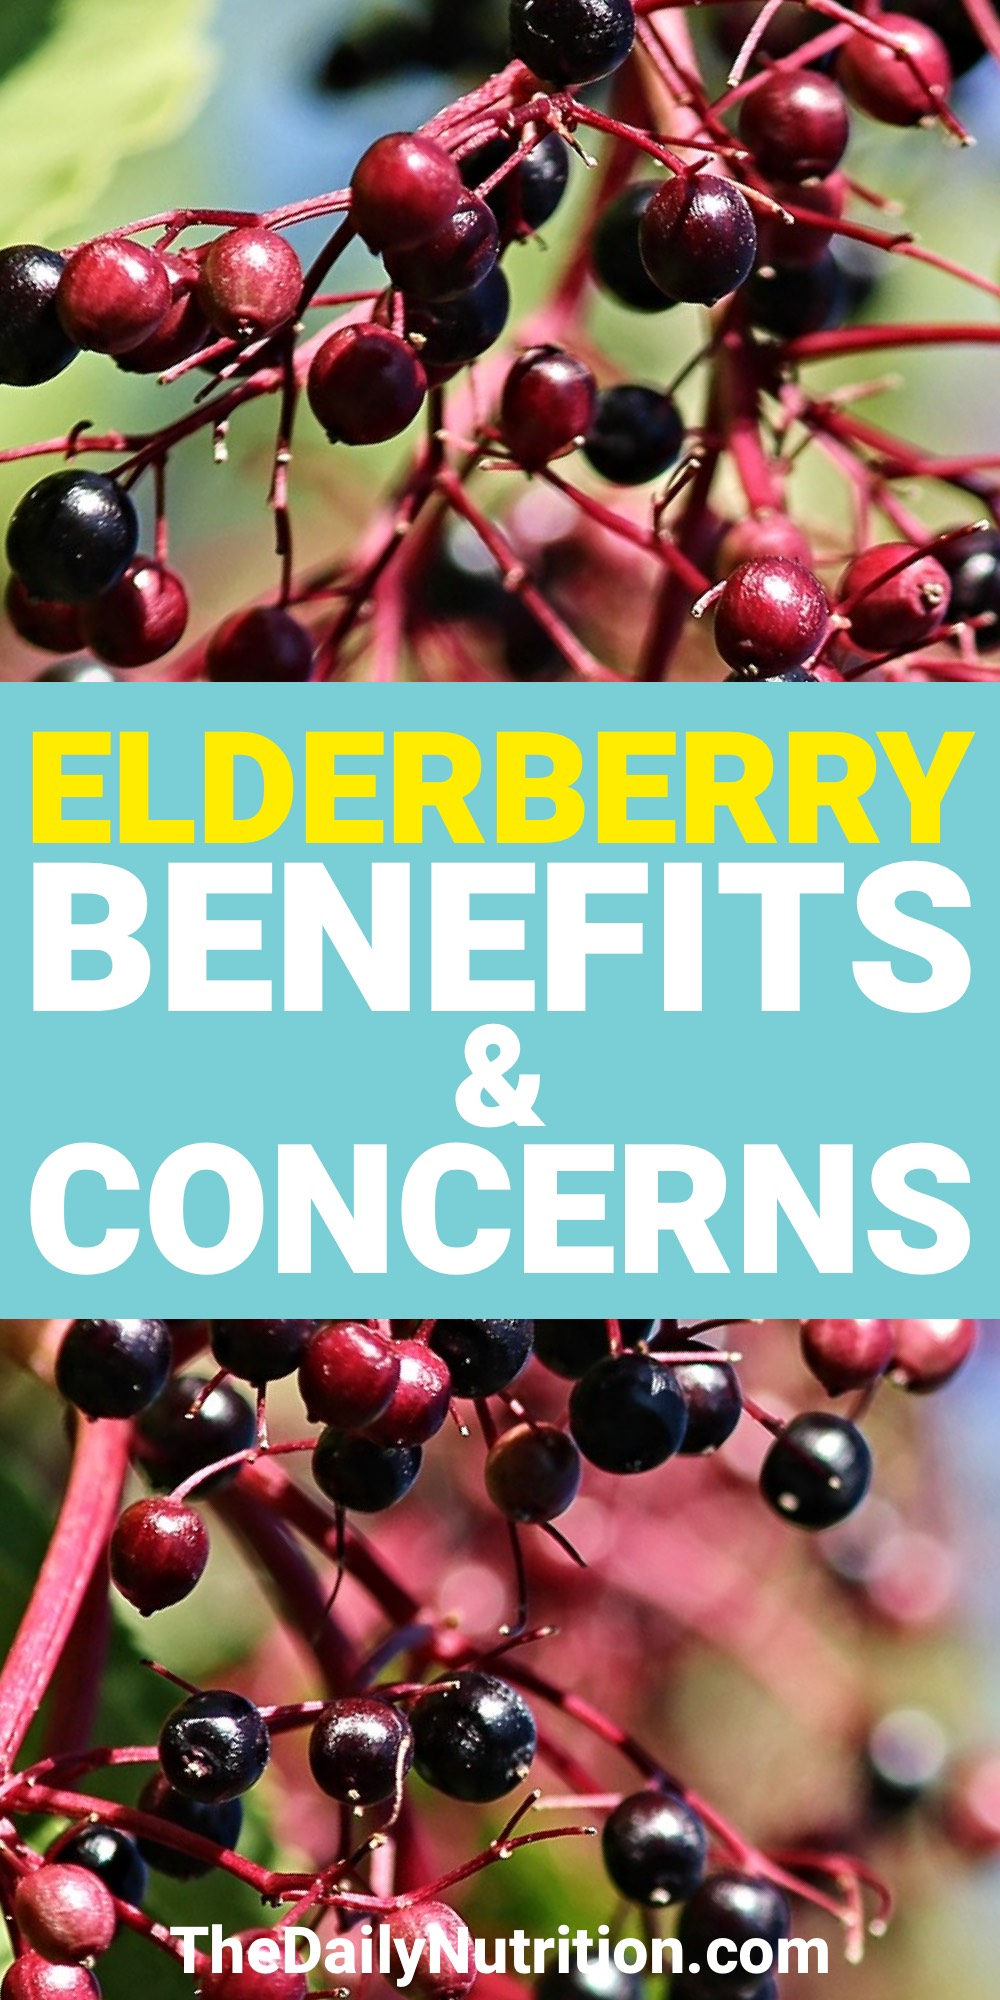 Elderberries are going to help you through any sickness you have. Here are other elderberry benefits that you need.